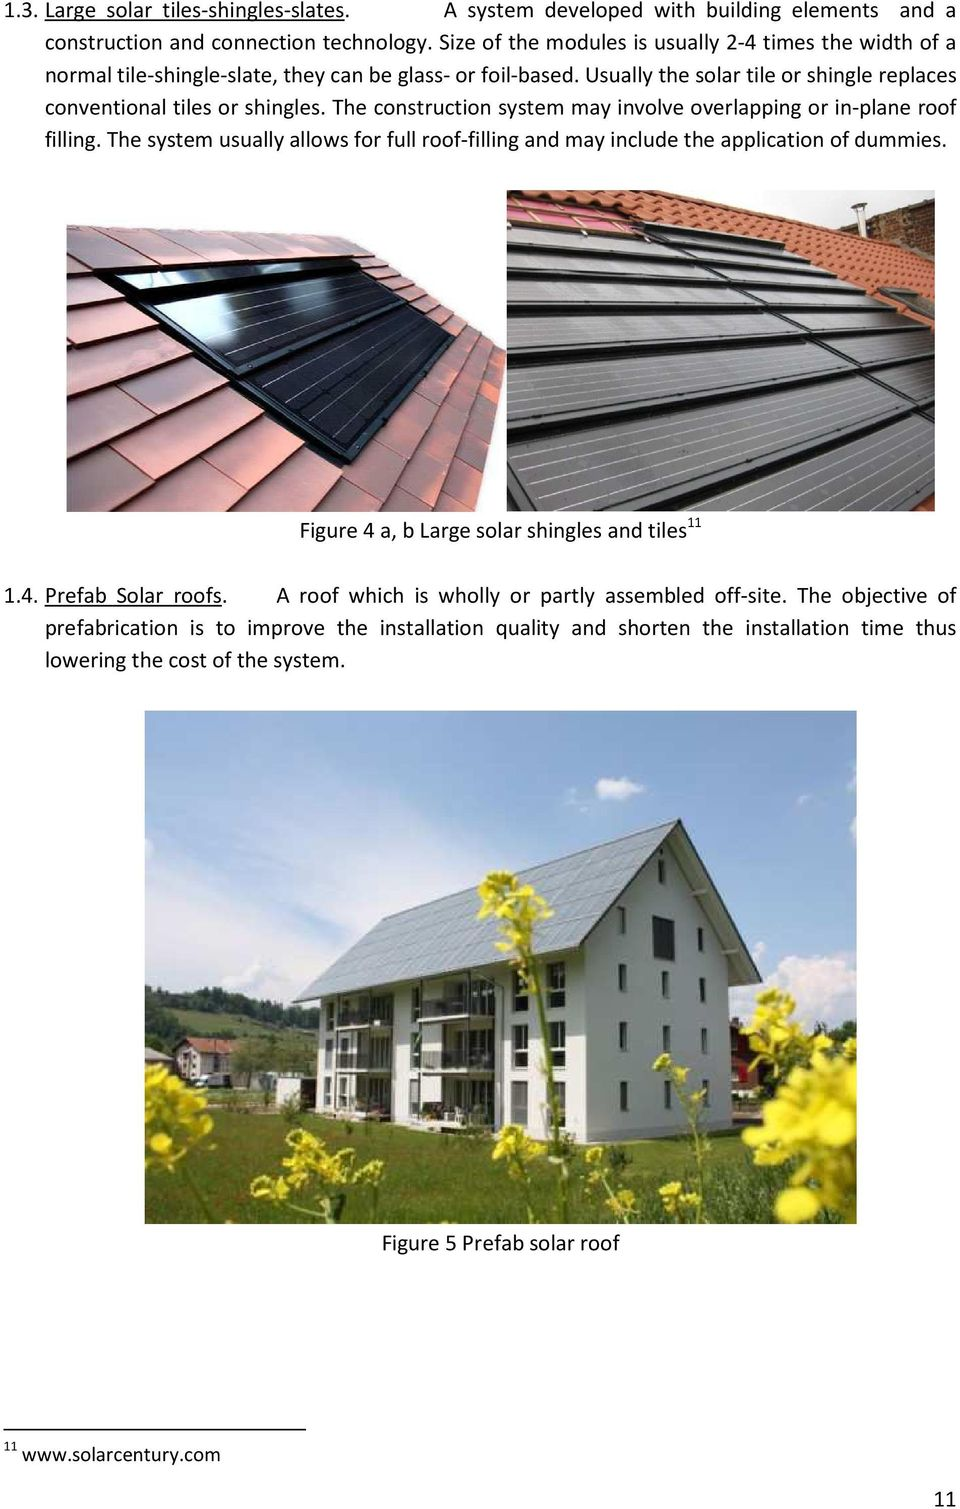 Bipv report state of the art in building integrated